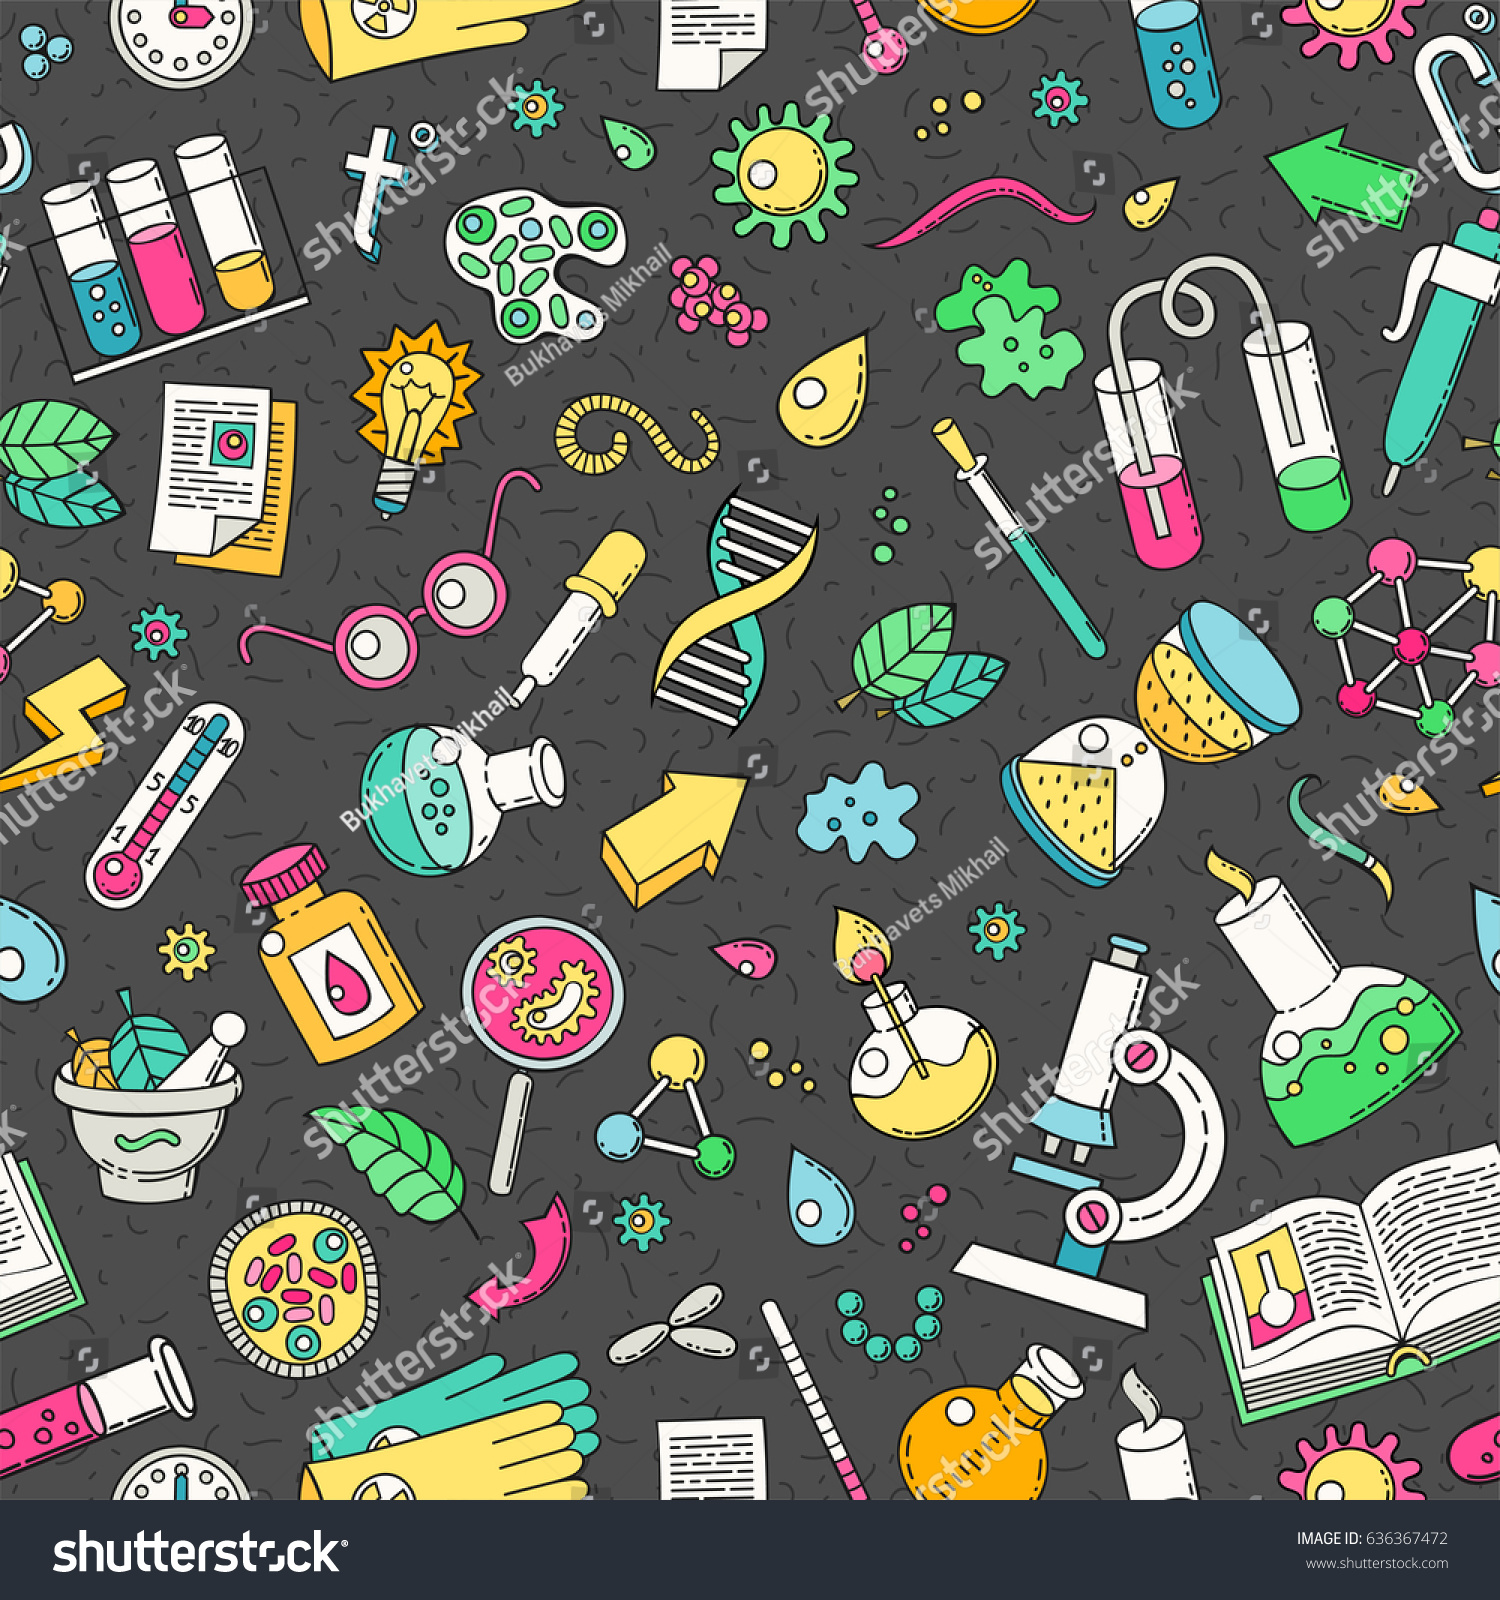 Science Laboratory Background Design: Seamless Background Science Doodles Style Bio Stock Vector